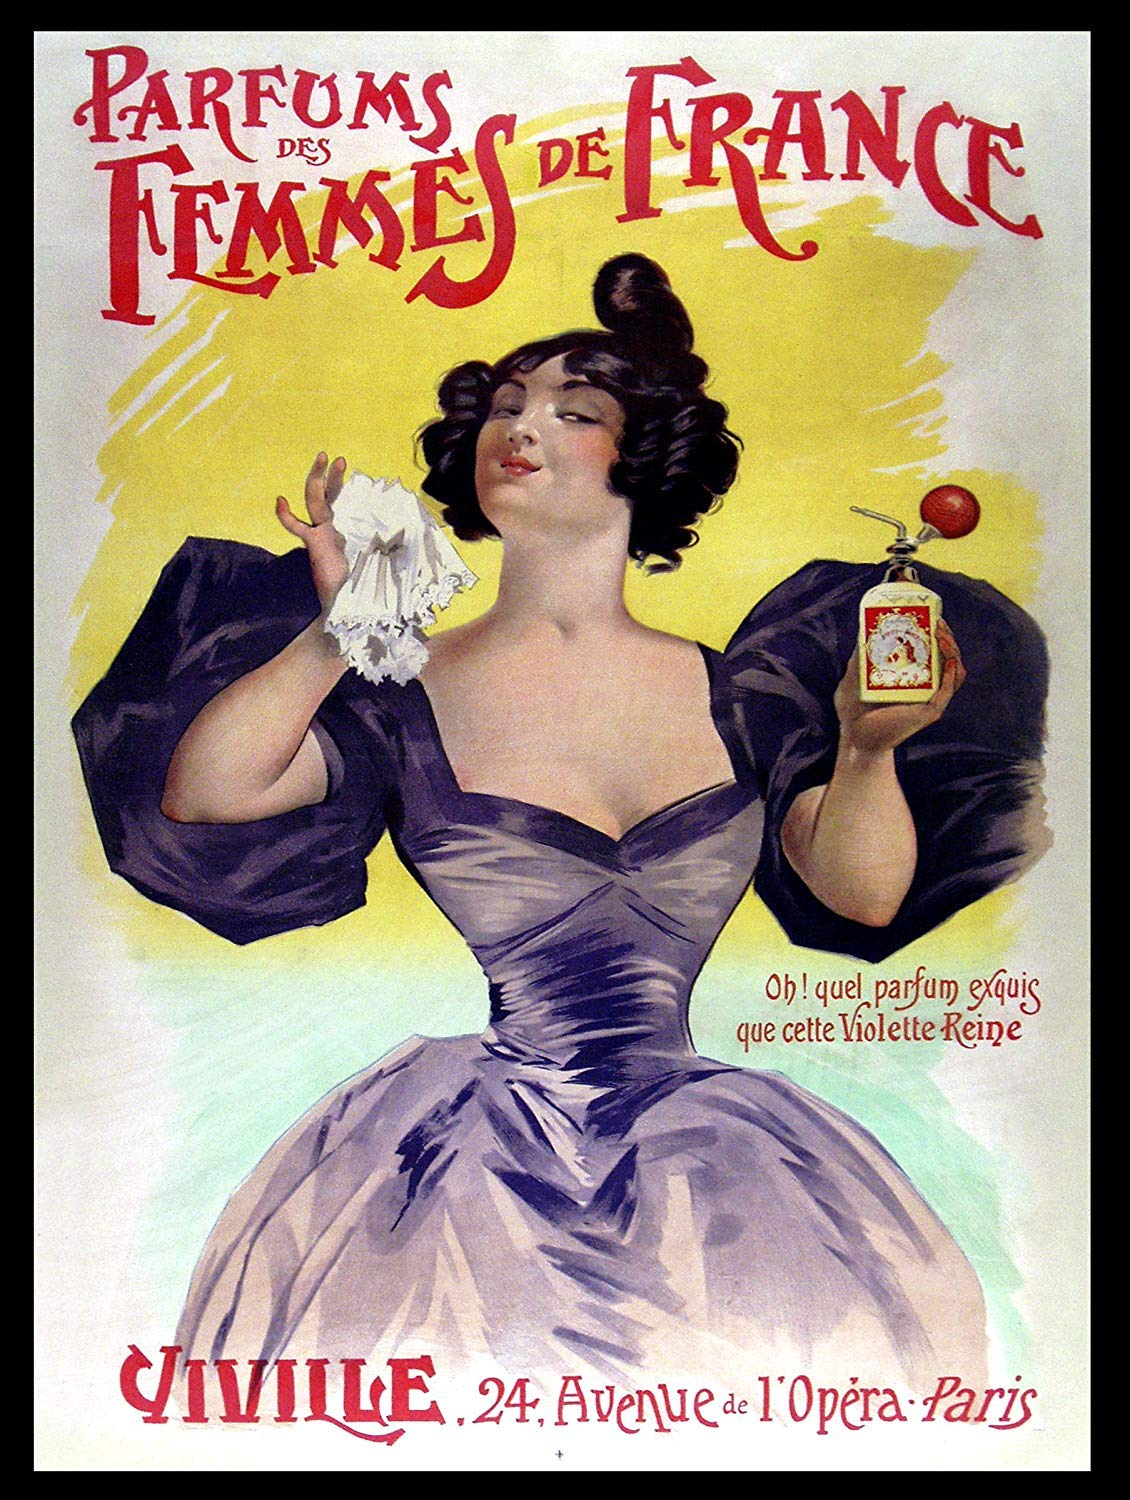 KELLEN WHITEHEAD PARFUMS des Femmes DE France Retro Metal TIN Wall Plaque Sign Novelty Gift Affiche de d/écoration dr/ôle de Panneau de Mur en m/étal Art